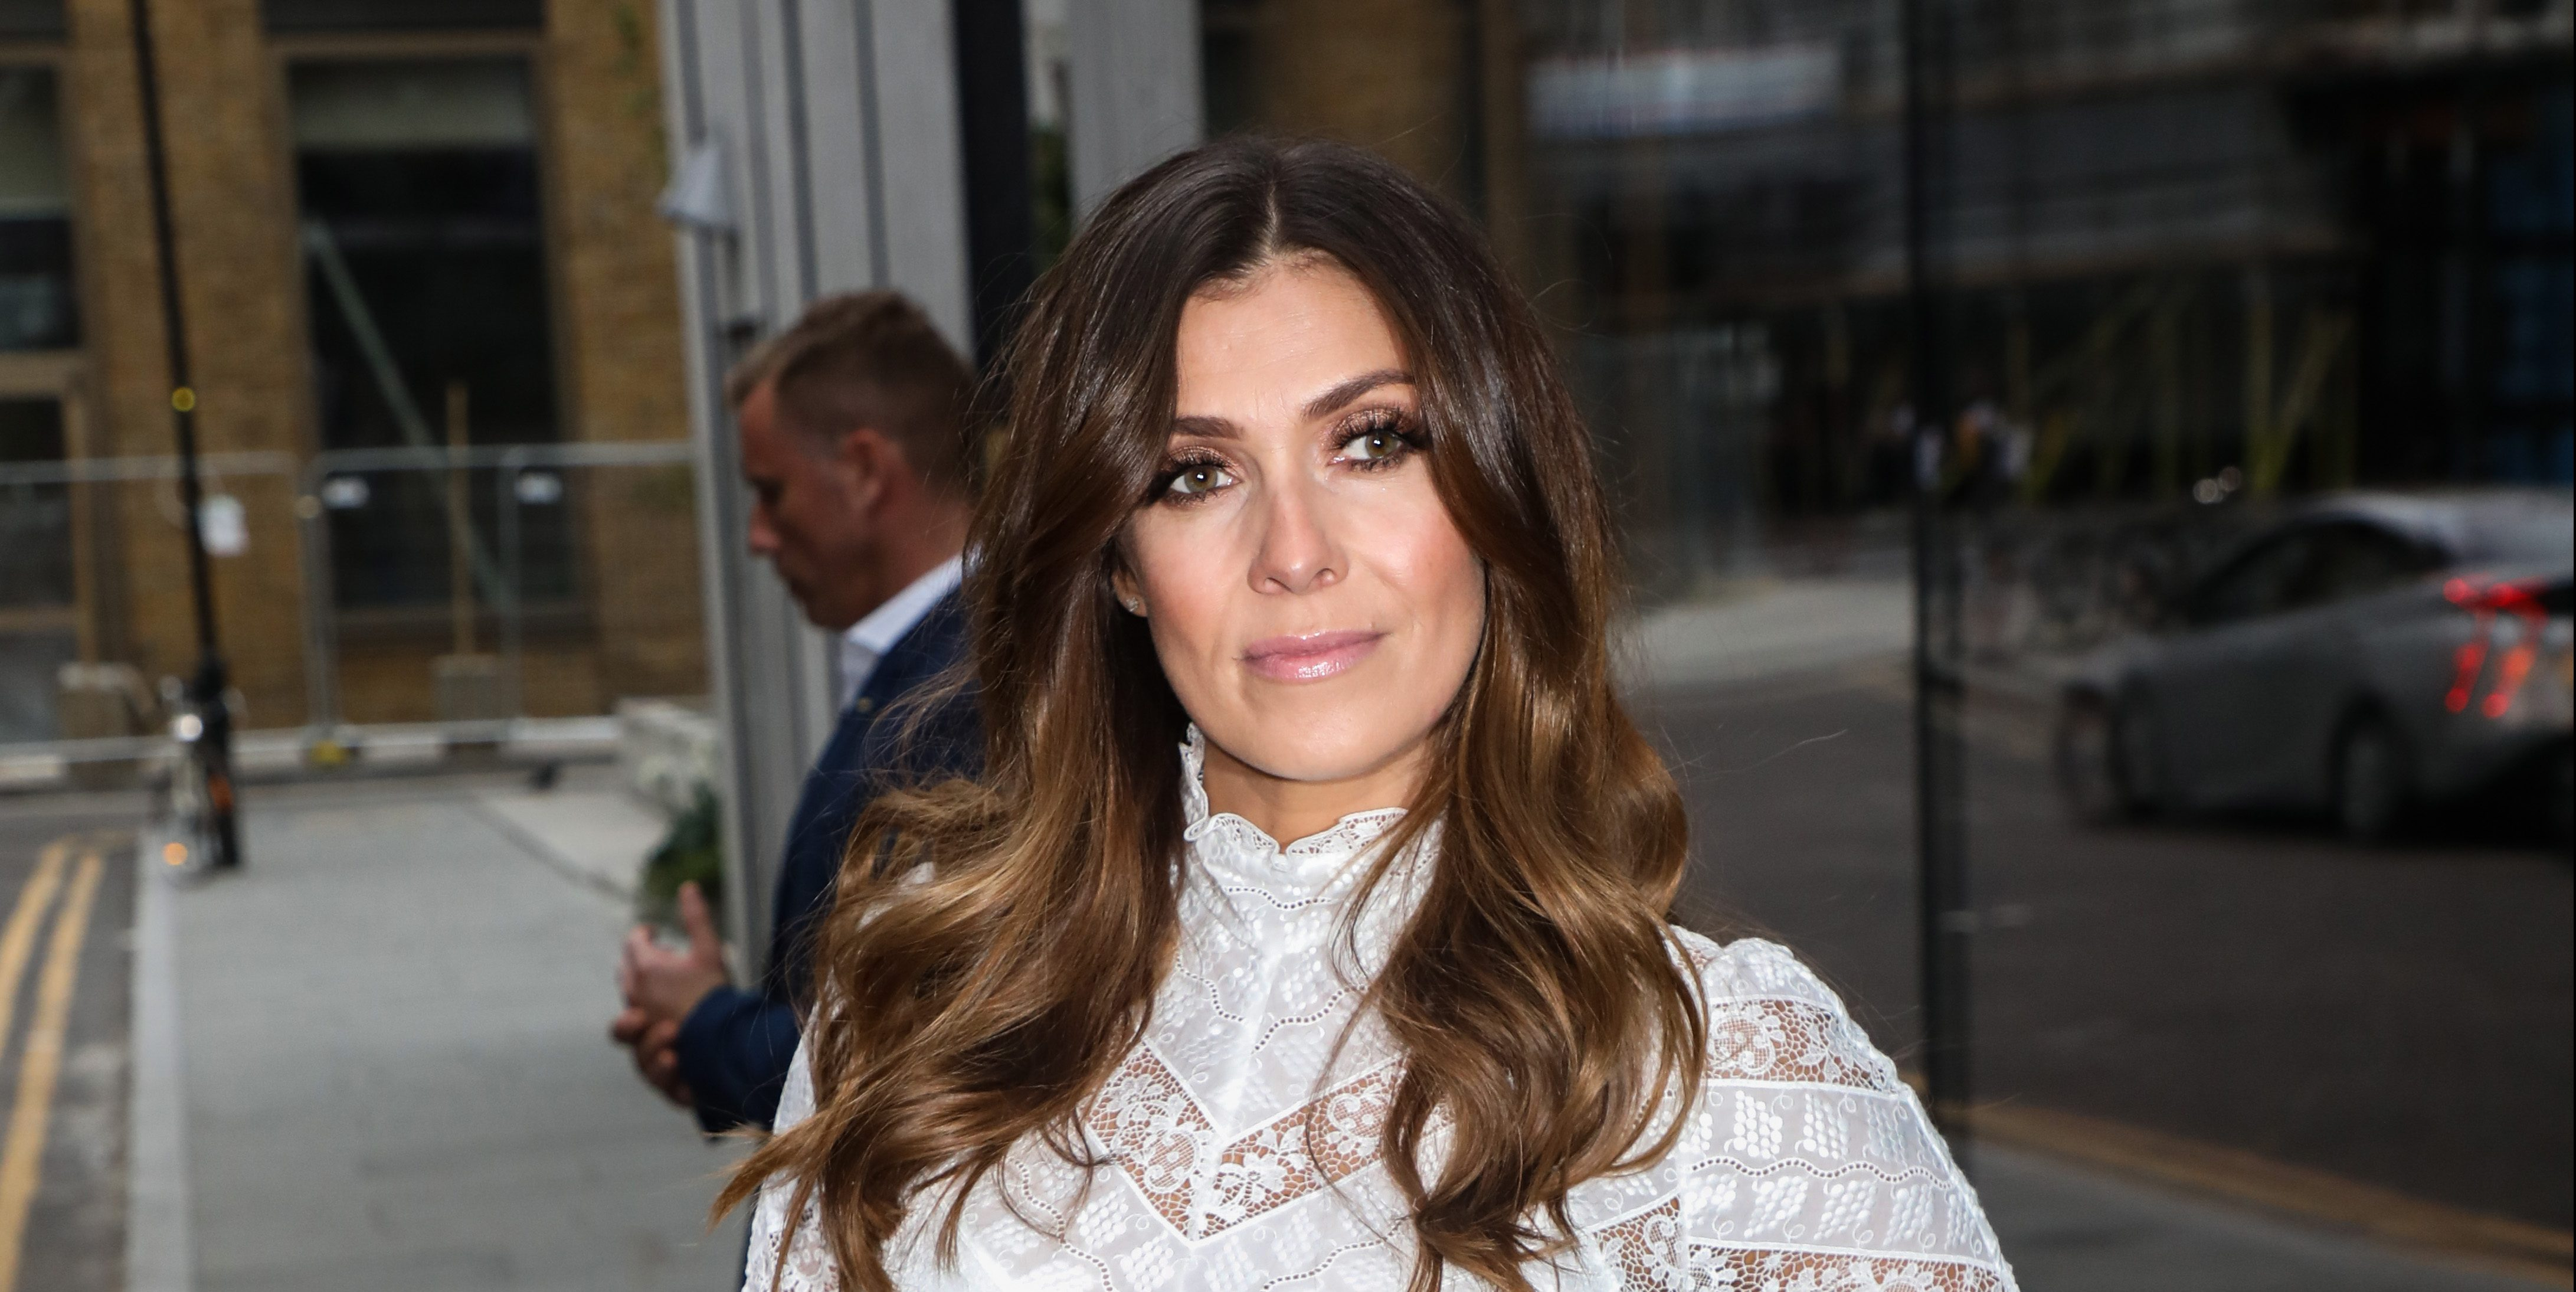 Kym Marsh shares back-to-school photo of daughter Polly